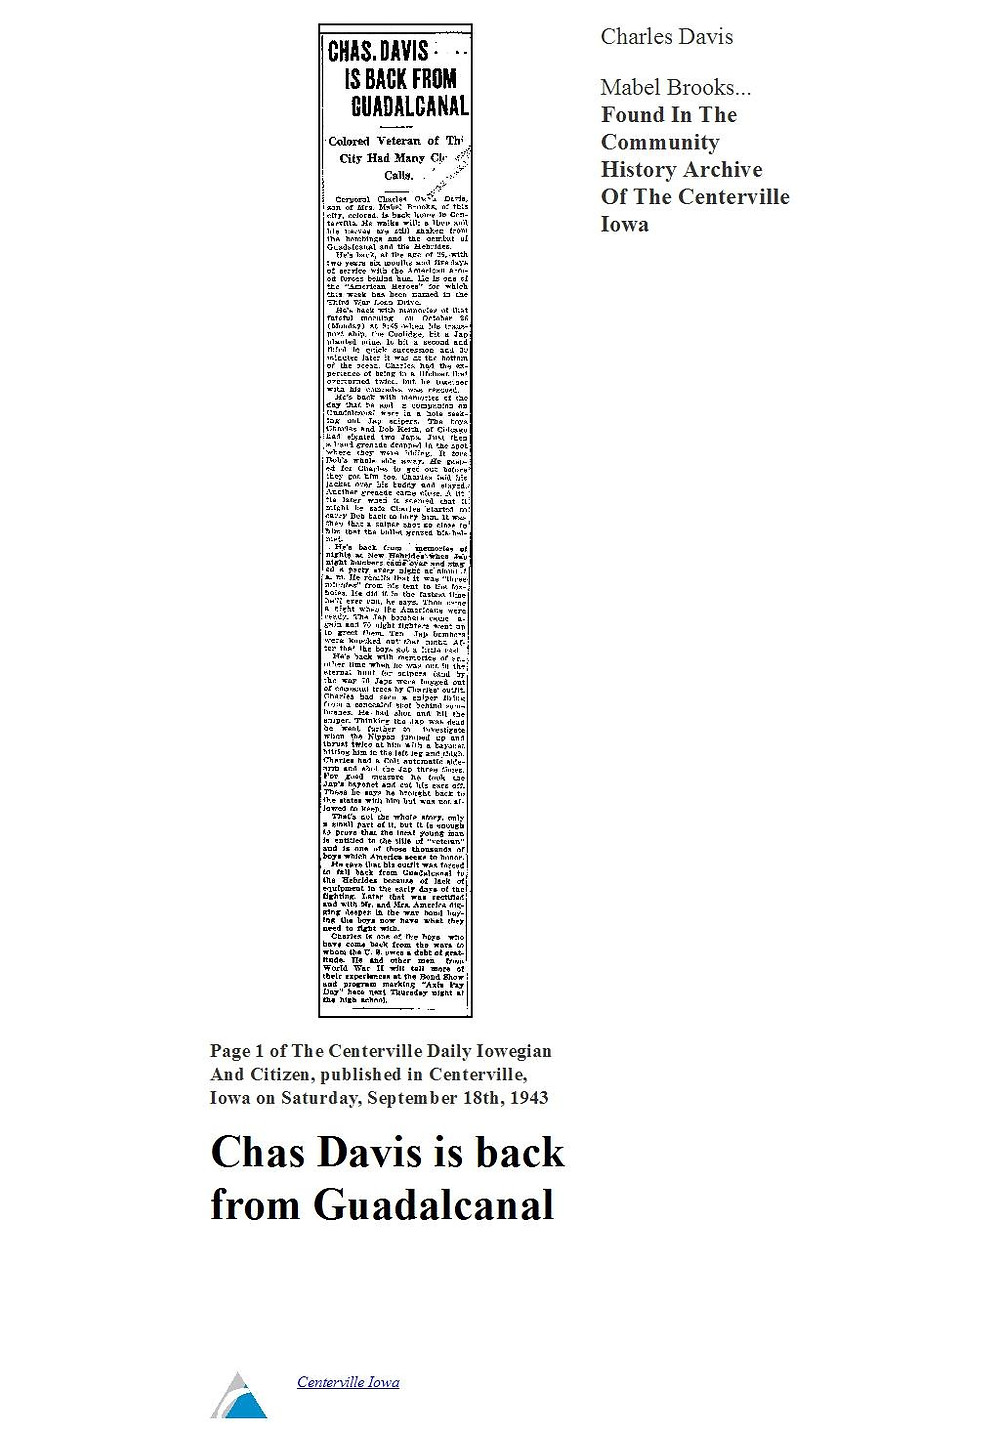 chas-davis-is-back-from-guadalcanal